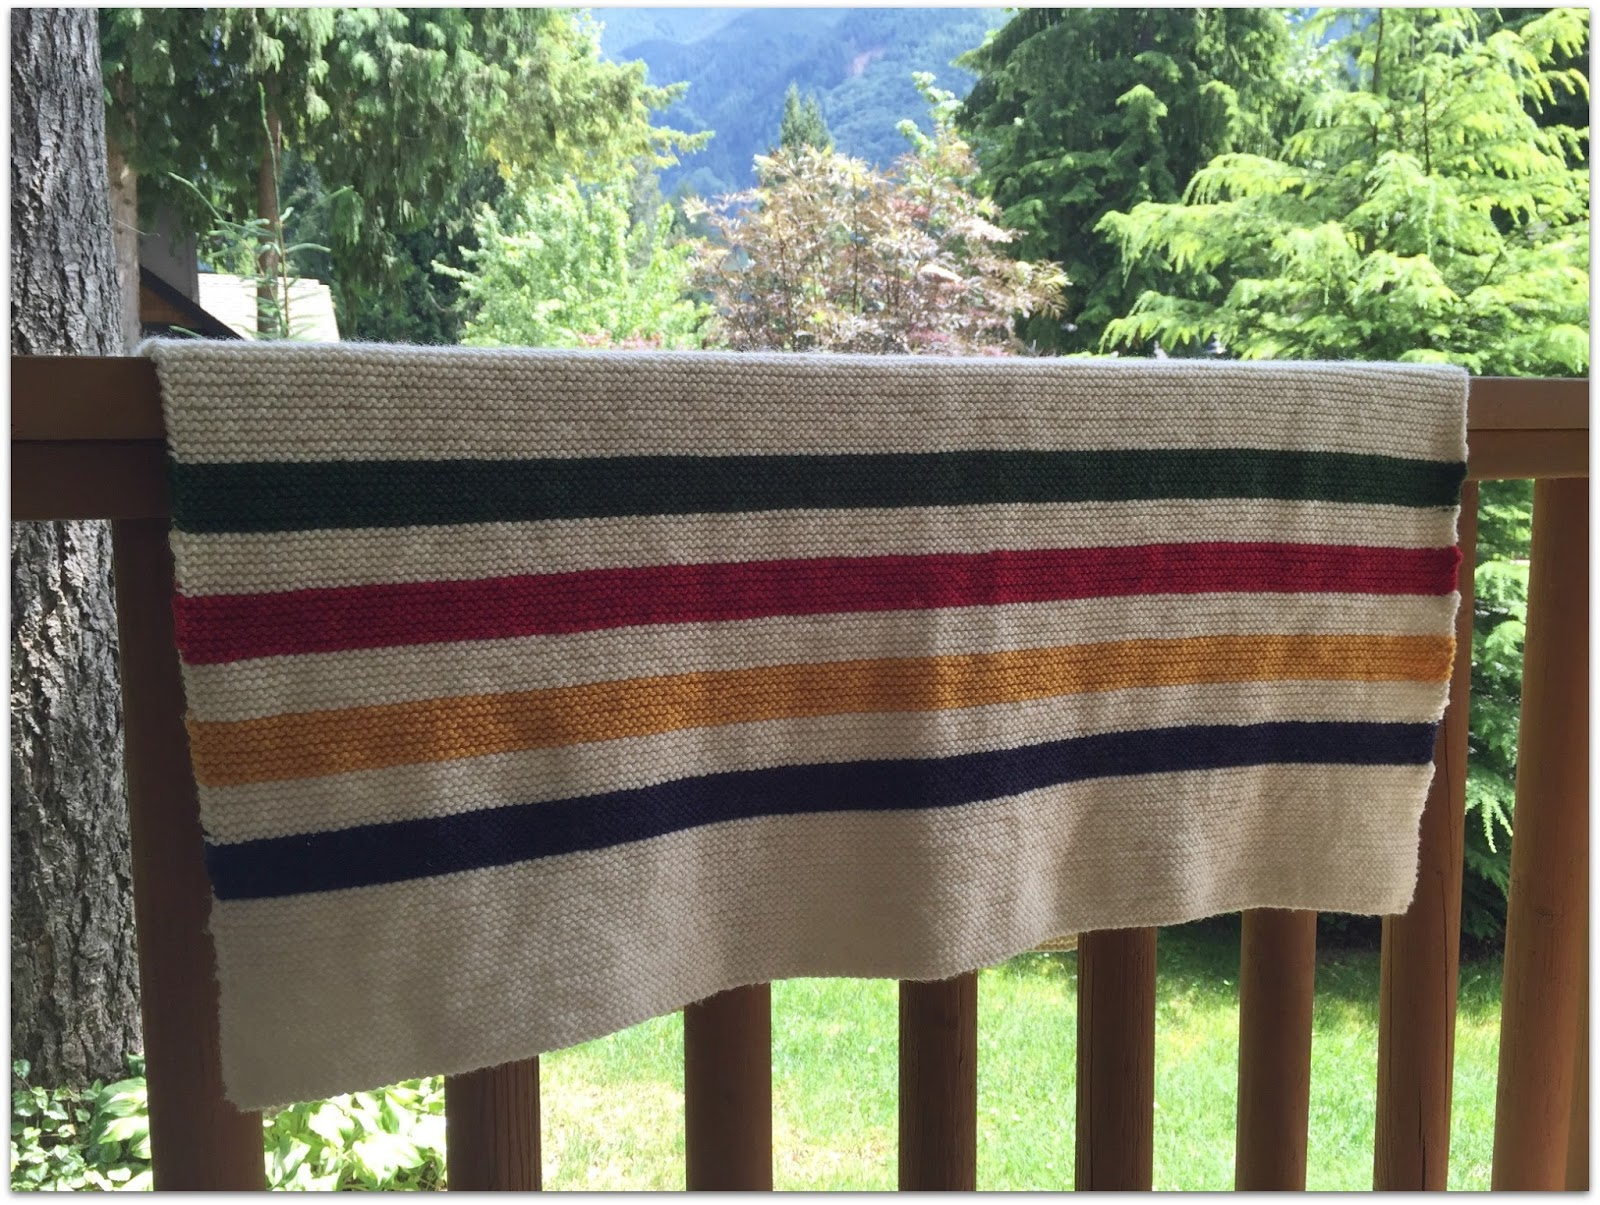 North of 49: About the Blanket